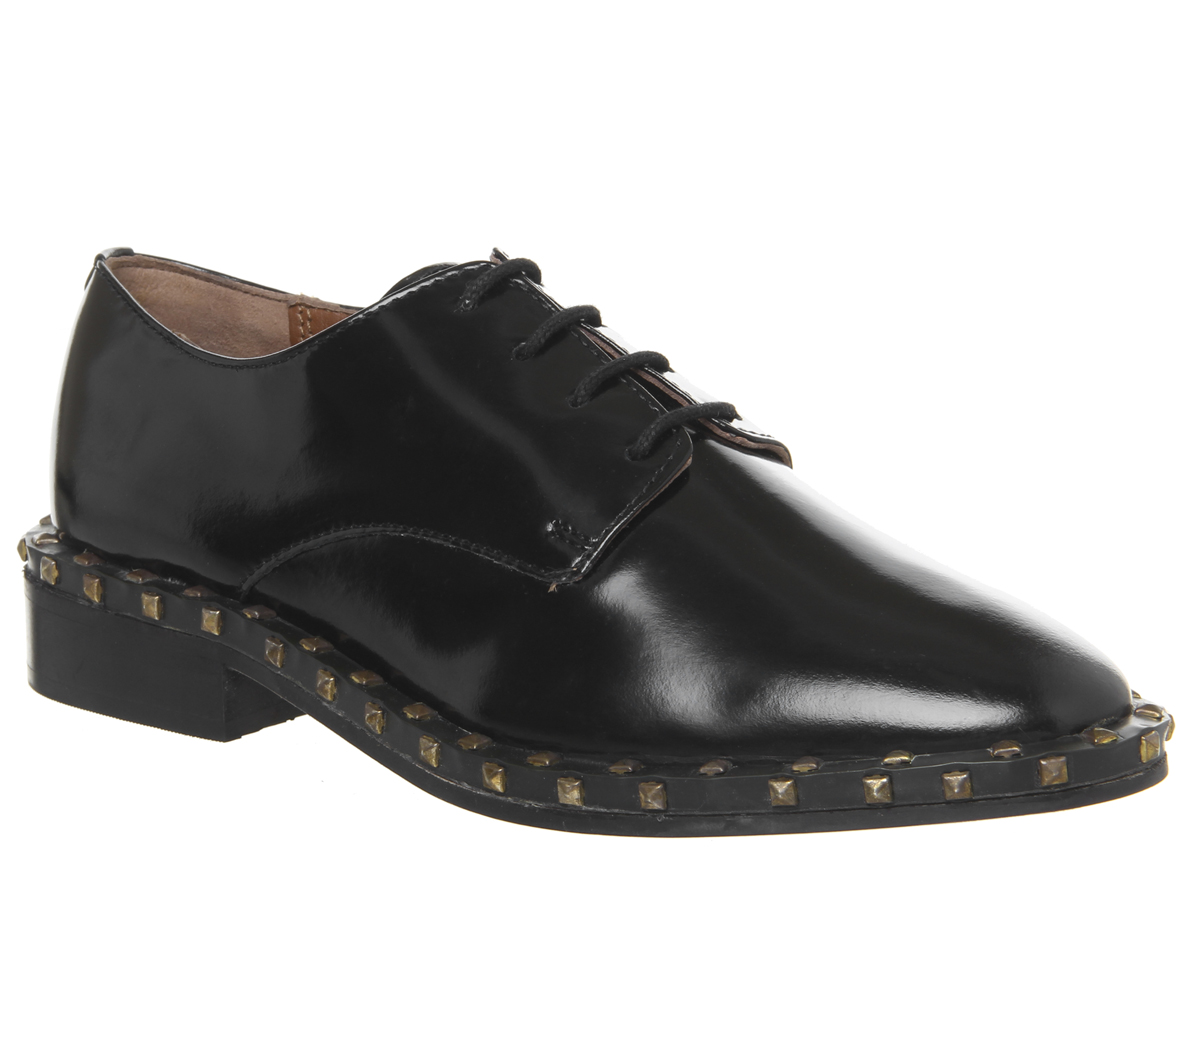 Damenschuhe Office Freefall Studded Lace Up Flats BLACK BOX LEATHER Flats Flats LEATHER afa8b2